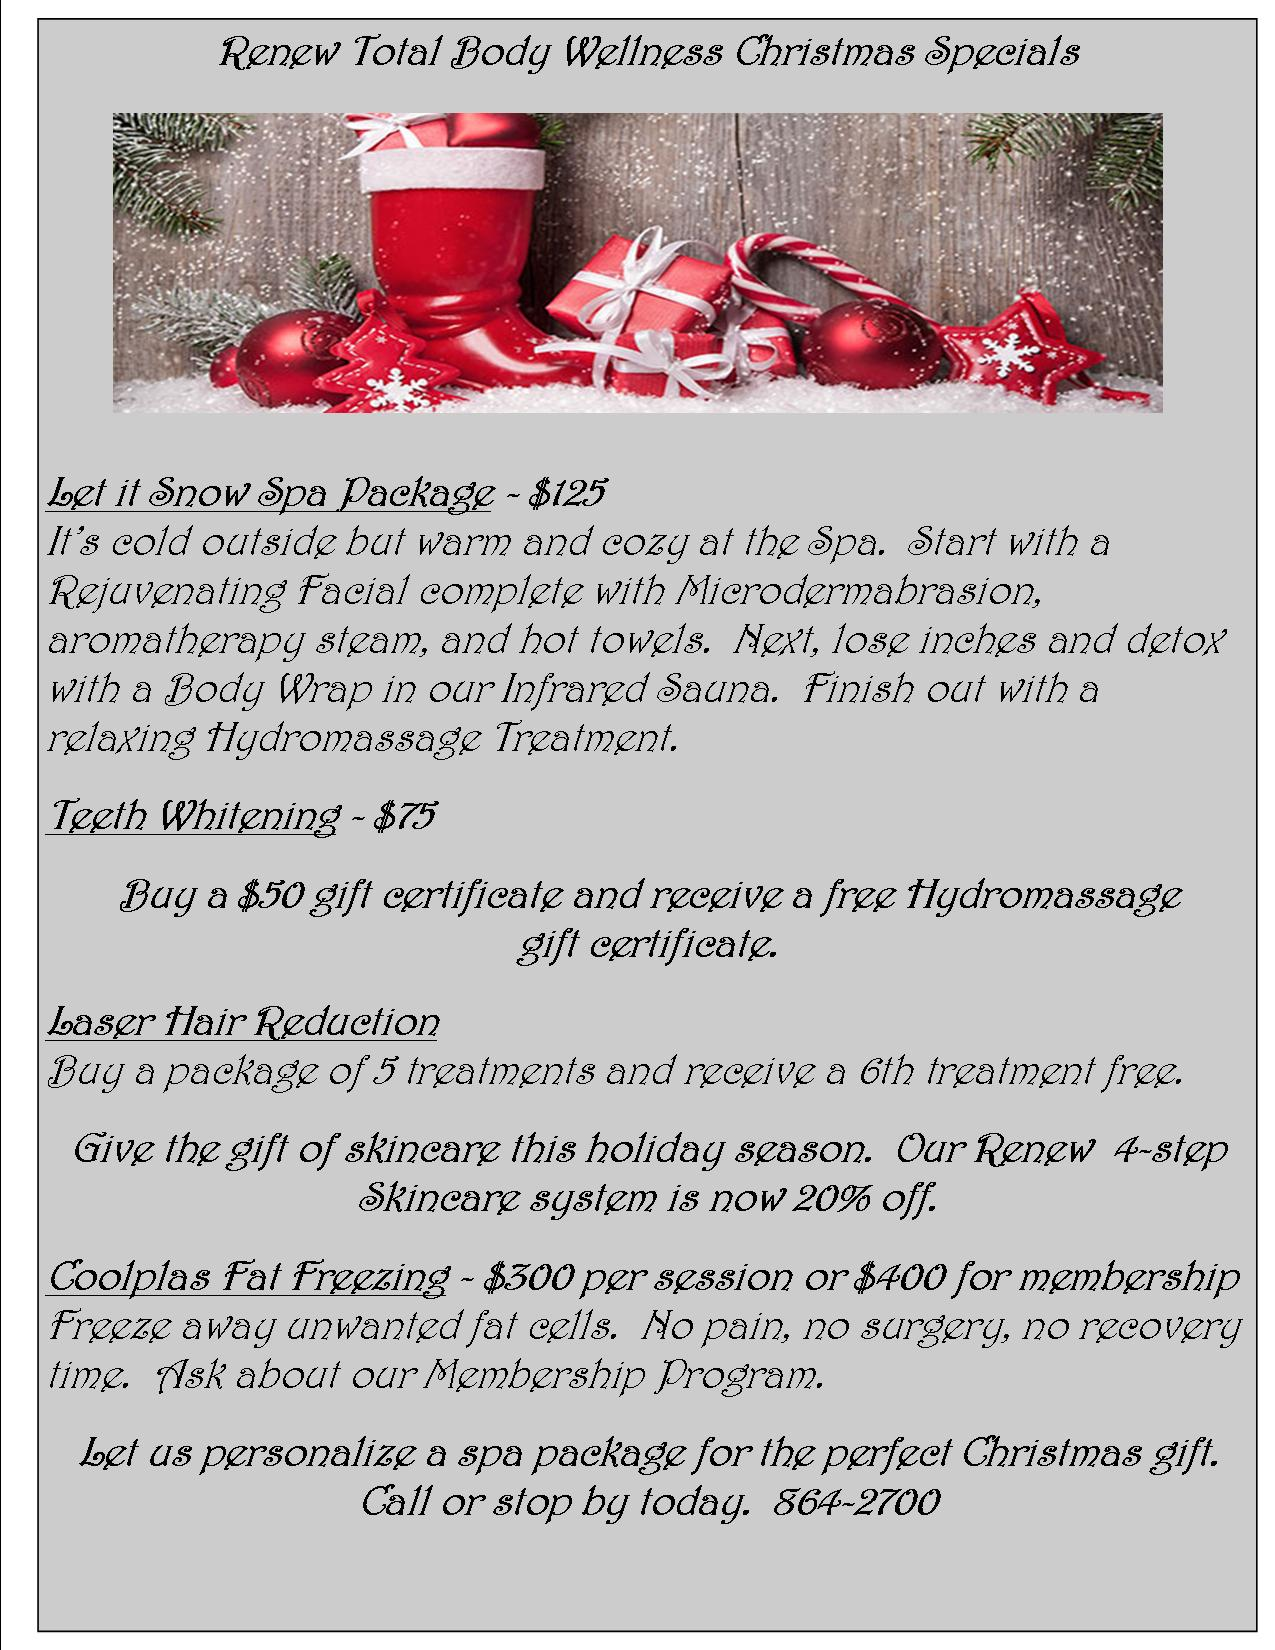 Renew Christmas Specials | Renew My Image Medical Spa